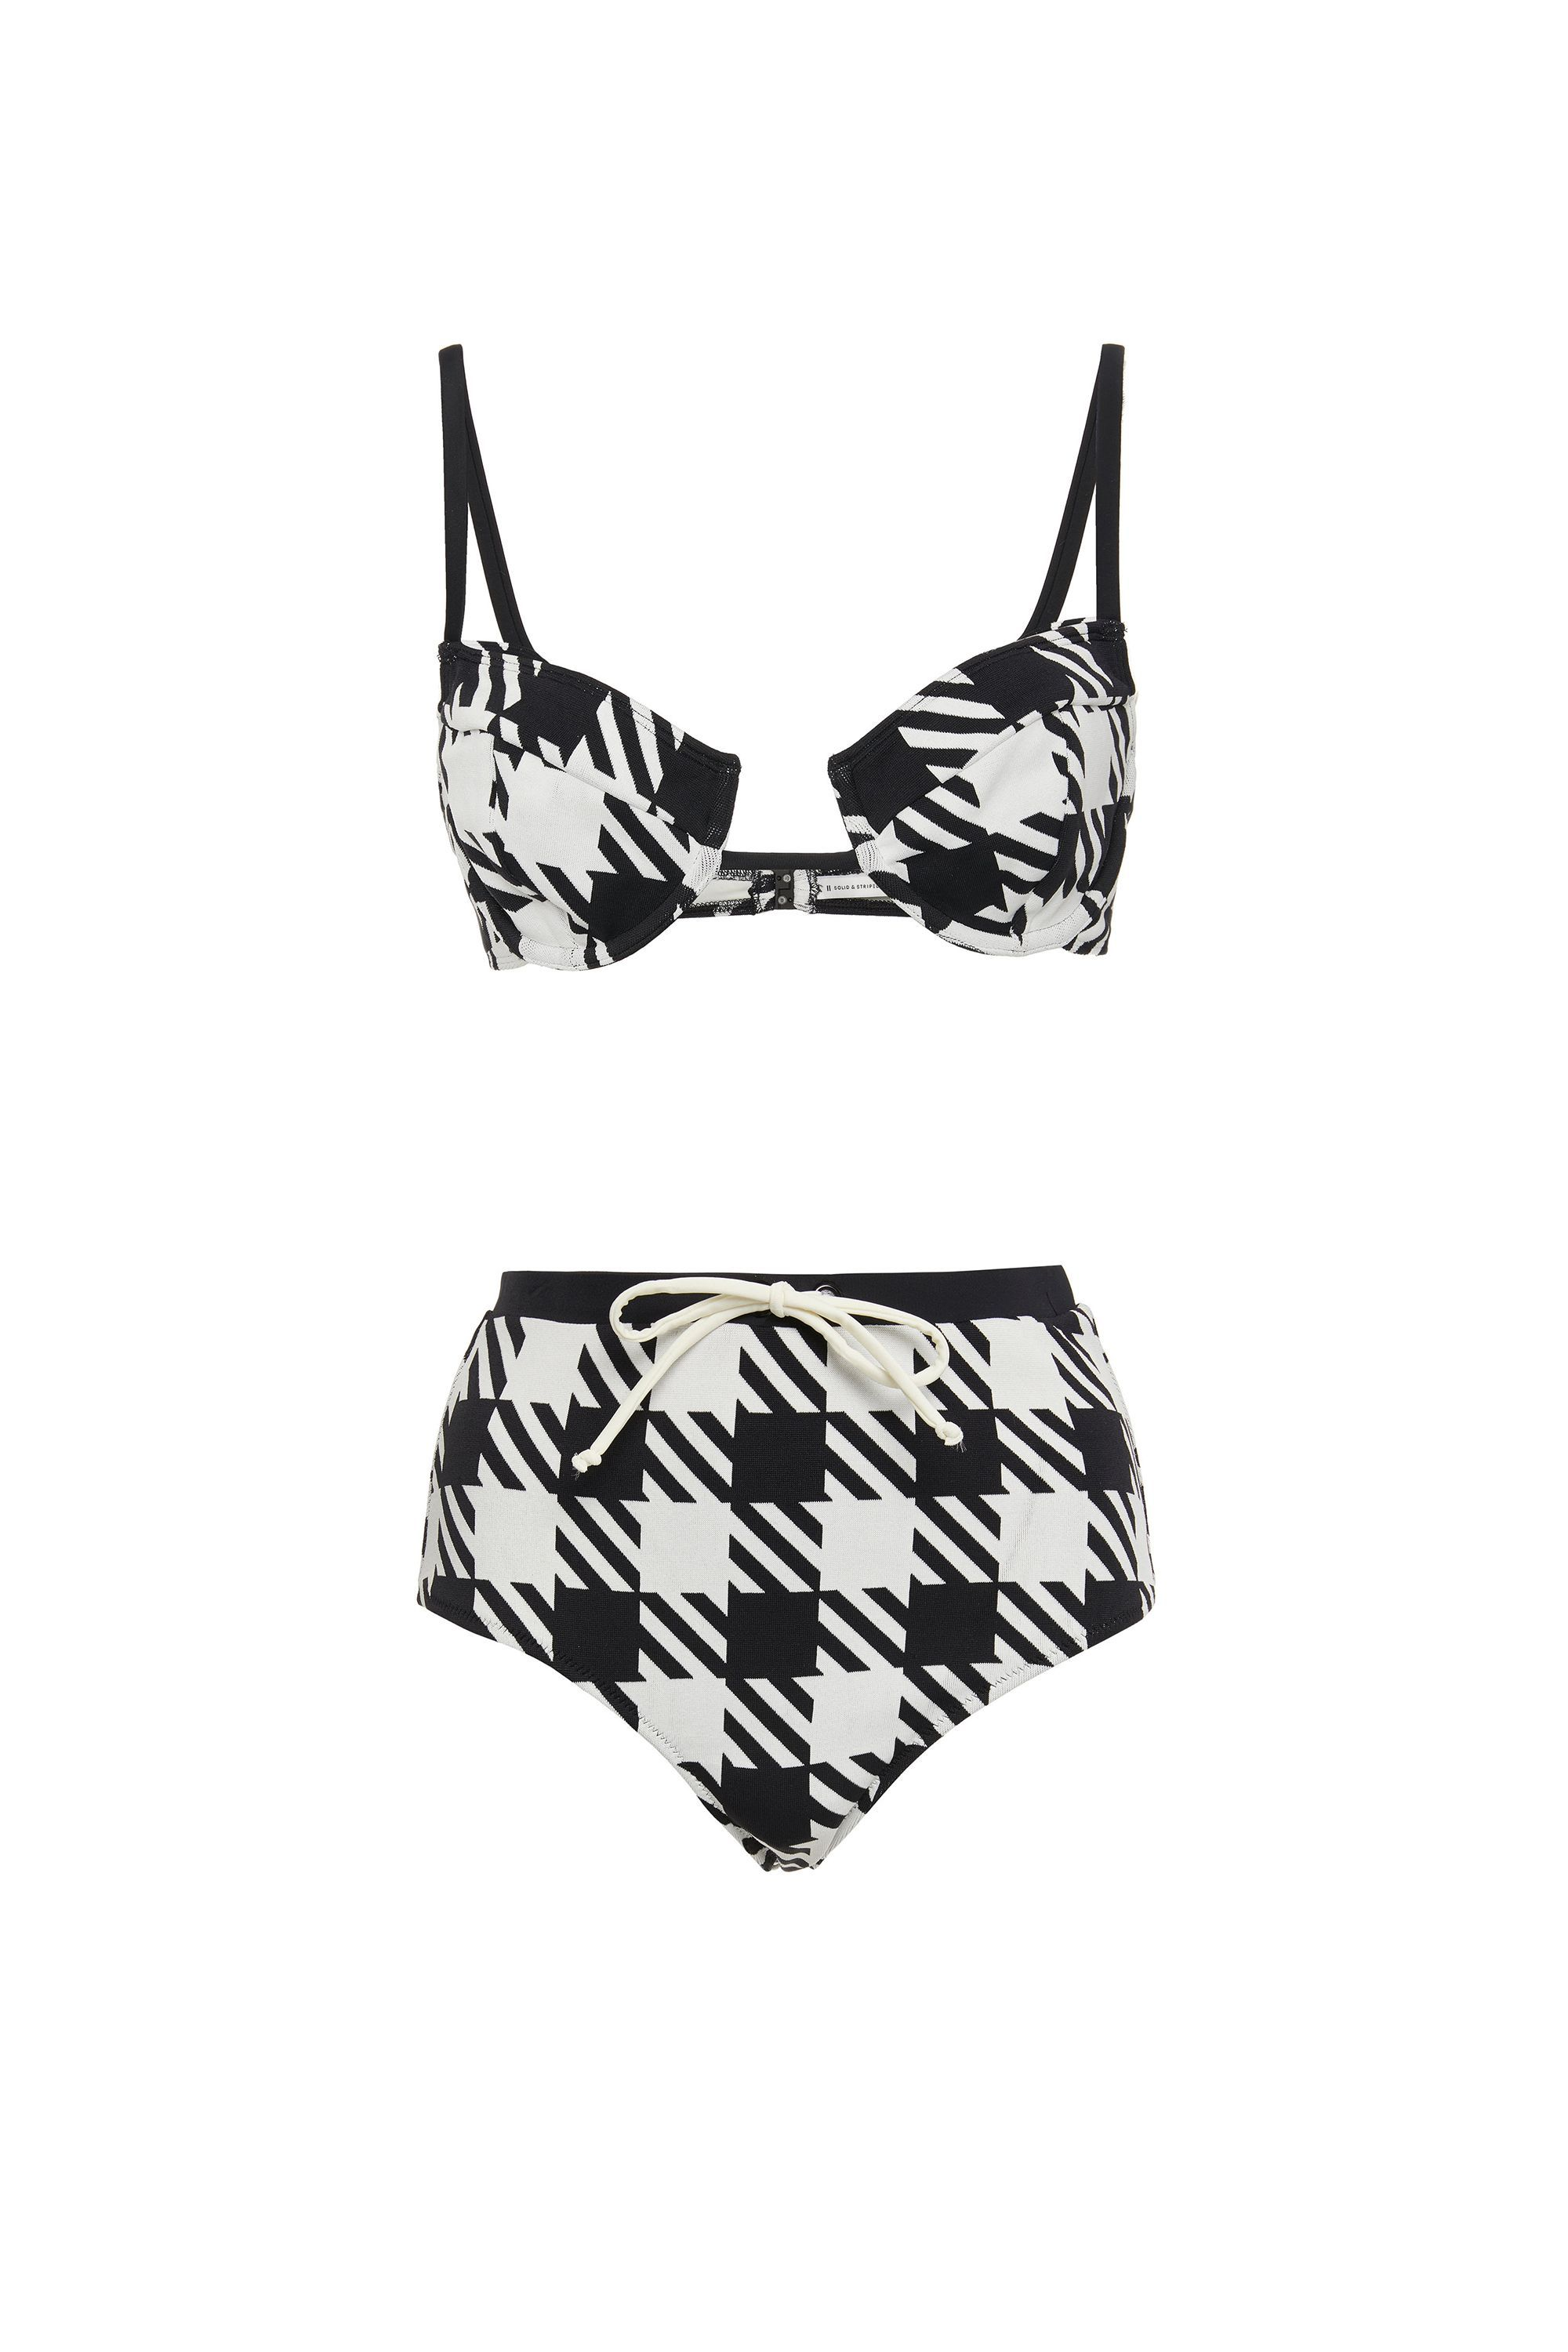 1adce17762c5c 23 Flattering High Waisted Bikinis for 2017- Retro High-Waisted Style  Swimsuits